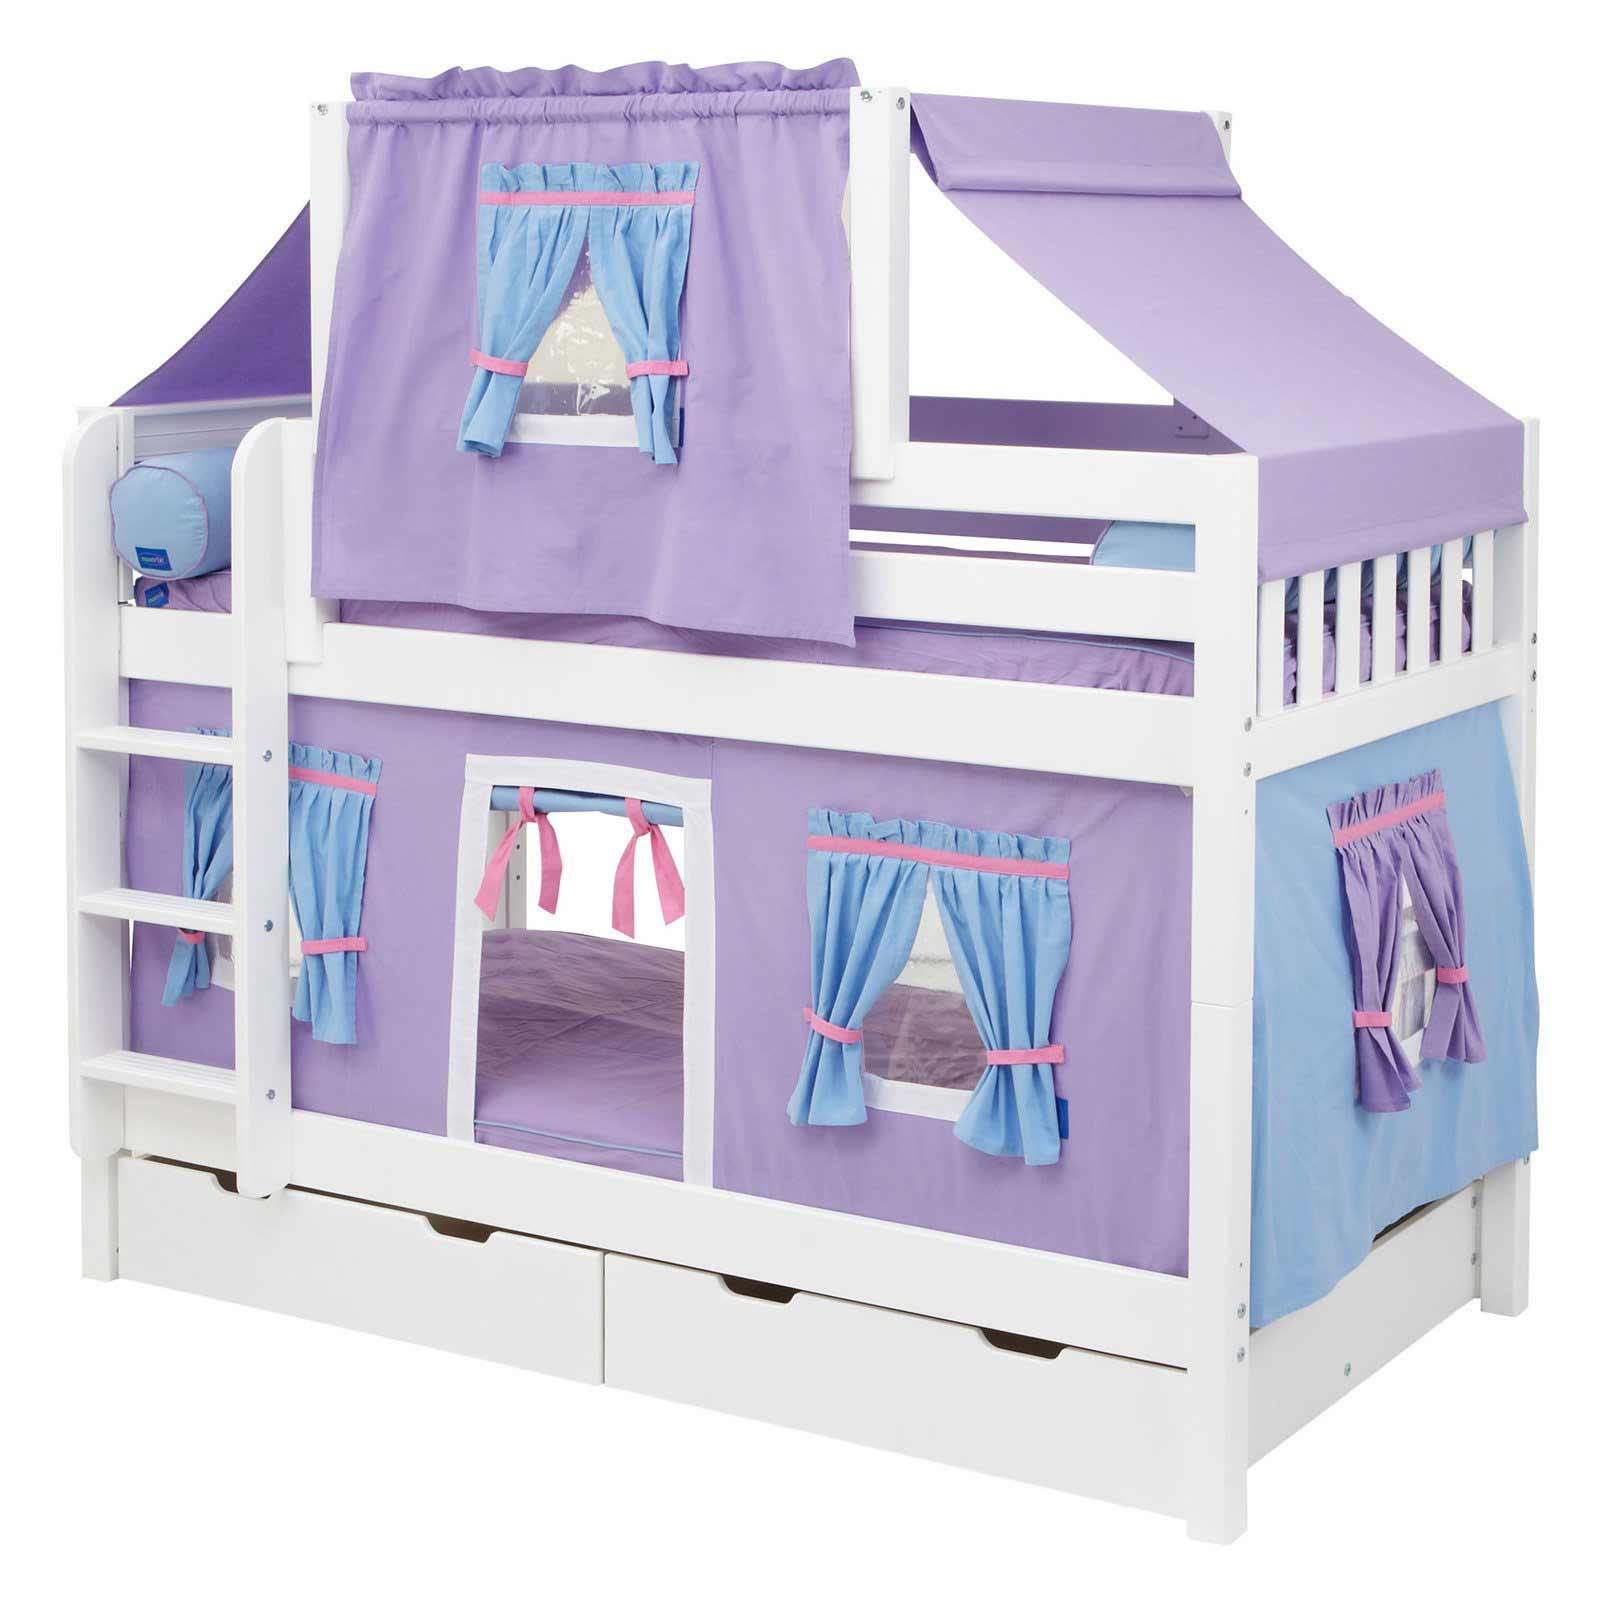 Bed Tents For Toddler Beds : Feel The Home